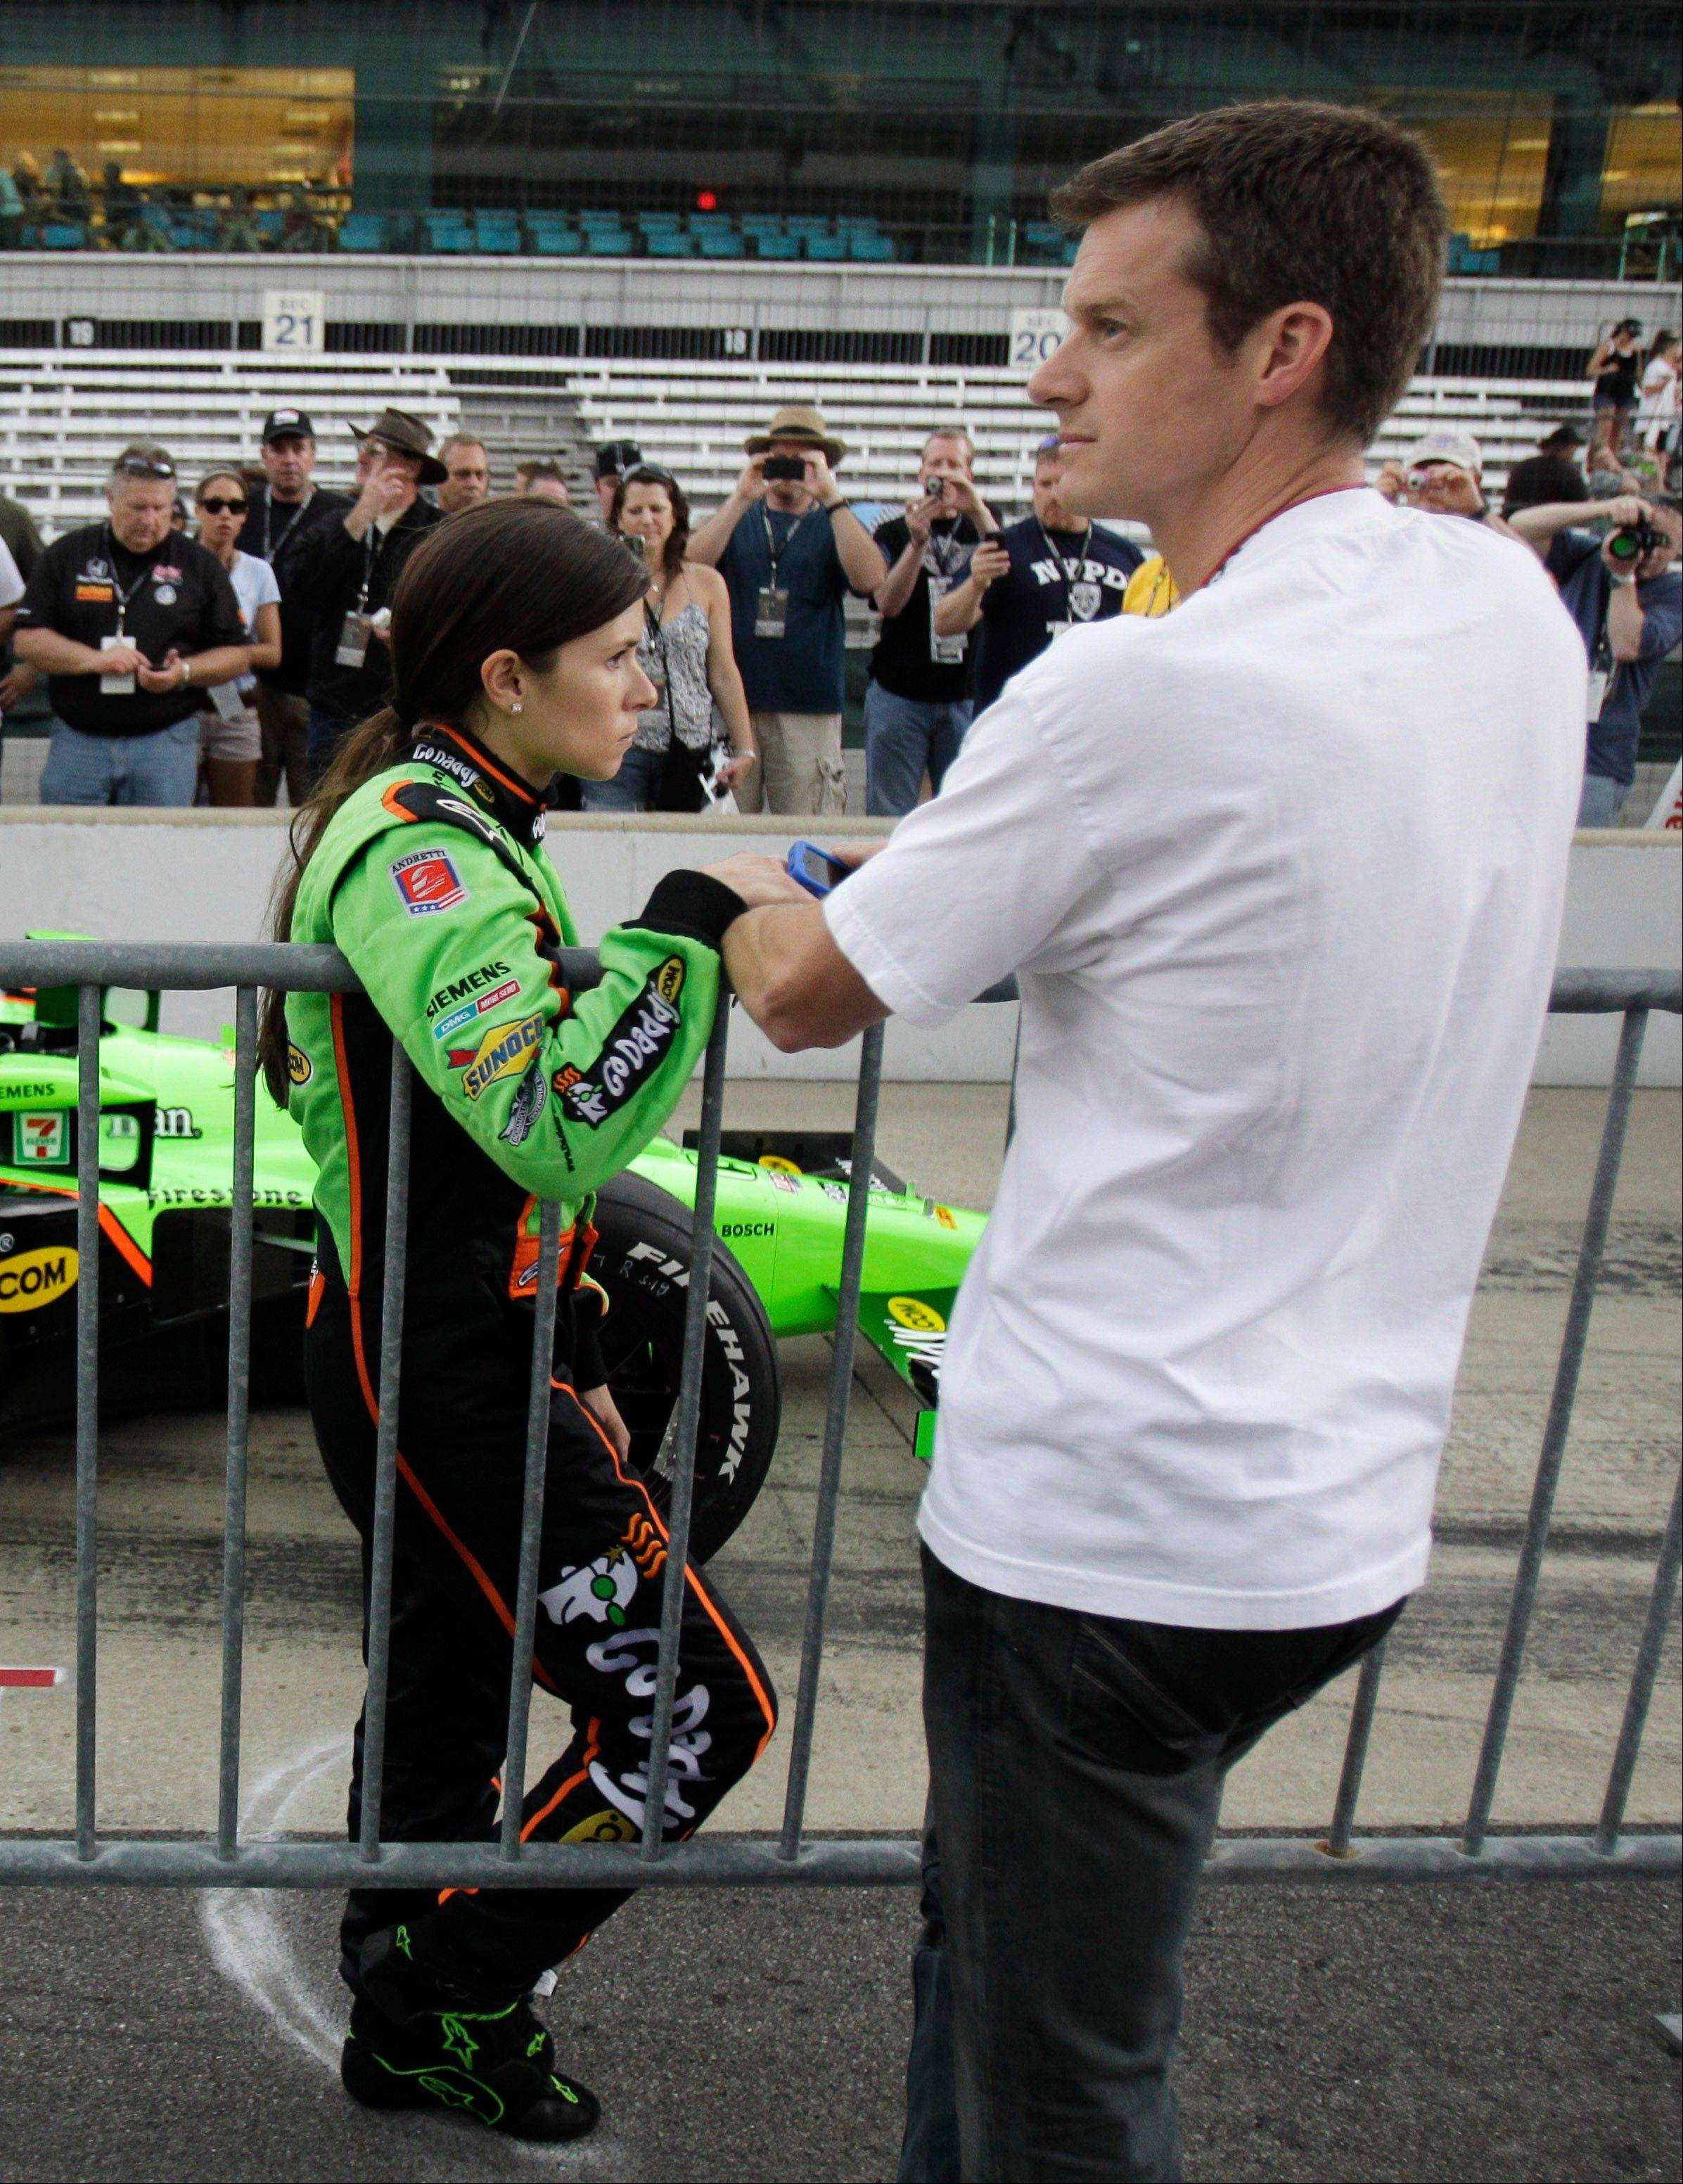 Danica Patrick announced Tuesday on her Facebook page that she and her husband, Paul Hospenthal, are divorcing after seven years of marriage.